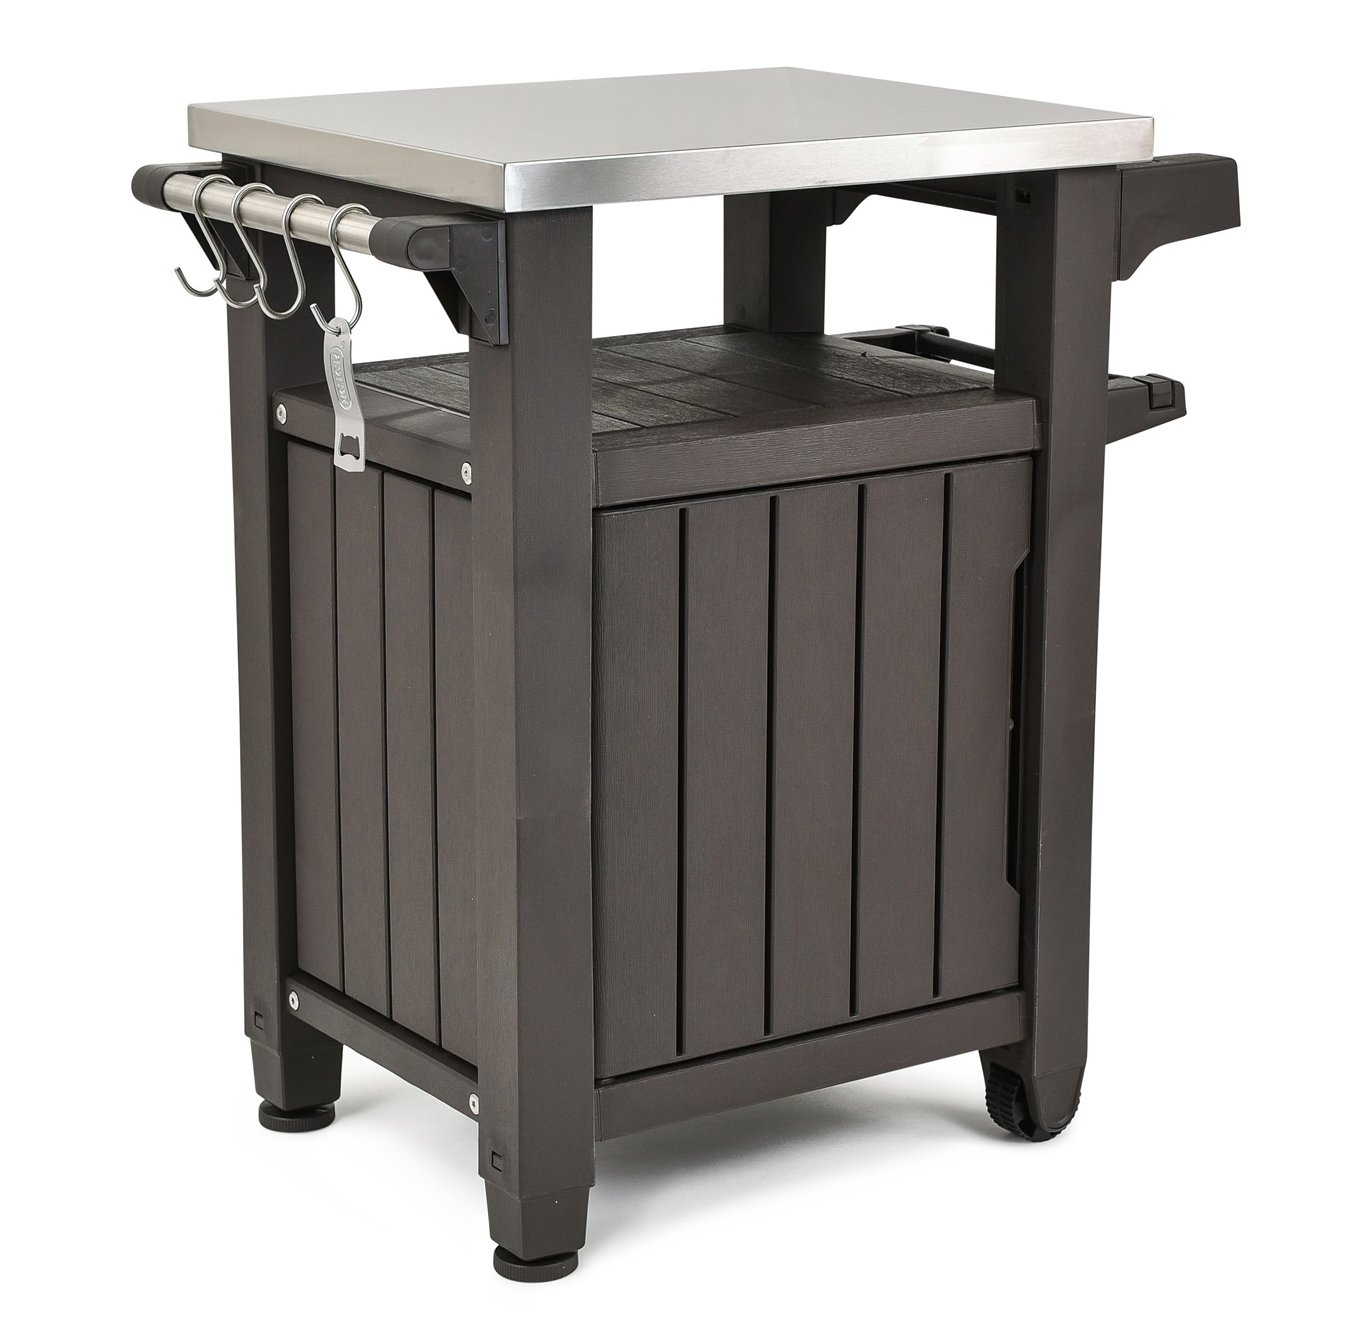 Merveilleux Keter Unity Indoor Outdoor BBQ Entertainment Storage Table/Prep Station  With Metal Top, Brown